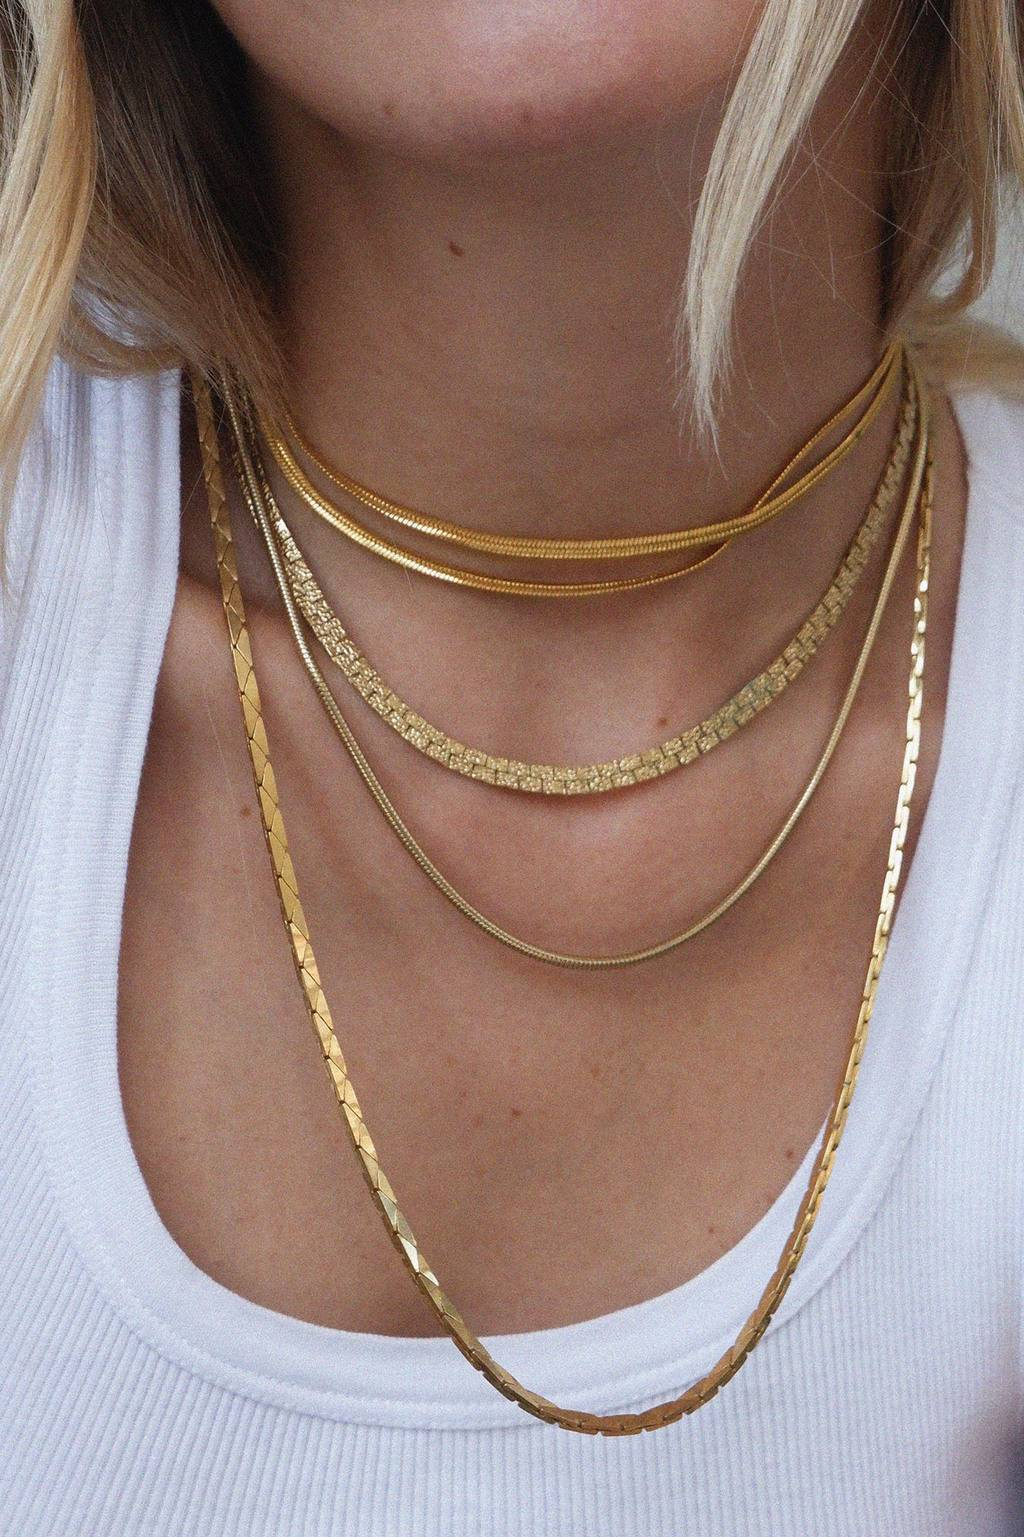 1990S GOLD FILLED CHAINS